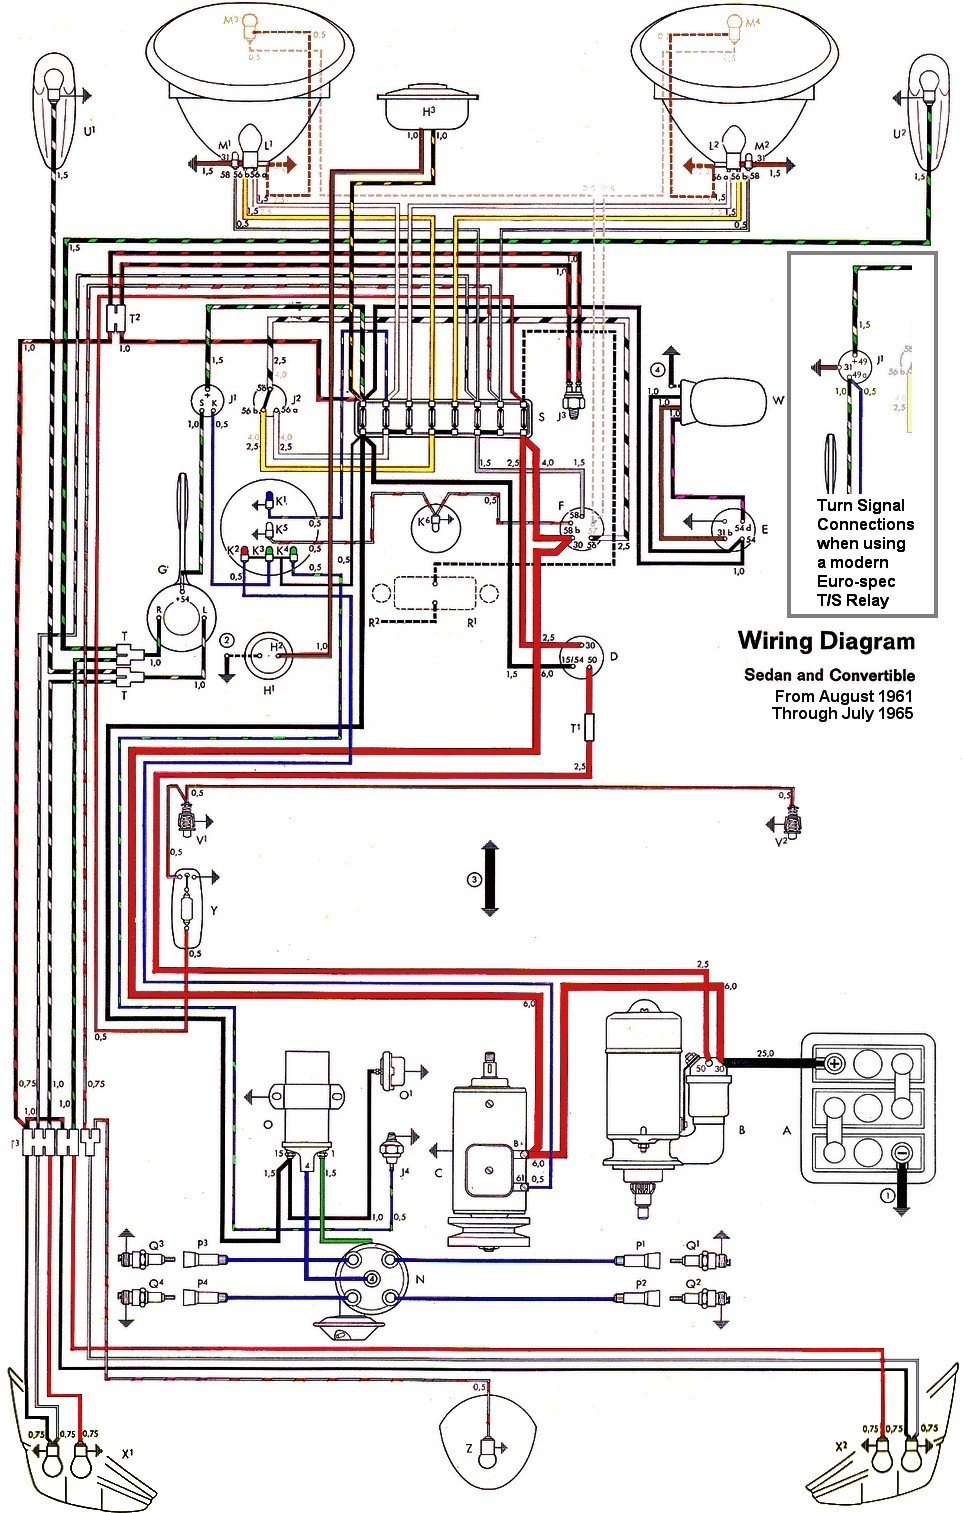 bug_62 65withinset wiring diagram vw beetle sedan and convertible 1961 1965 vw 1974 vw beetle wiring diagram at virtualis.co